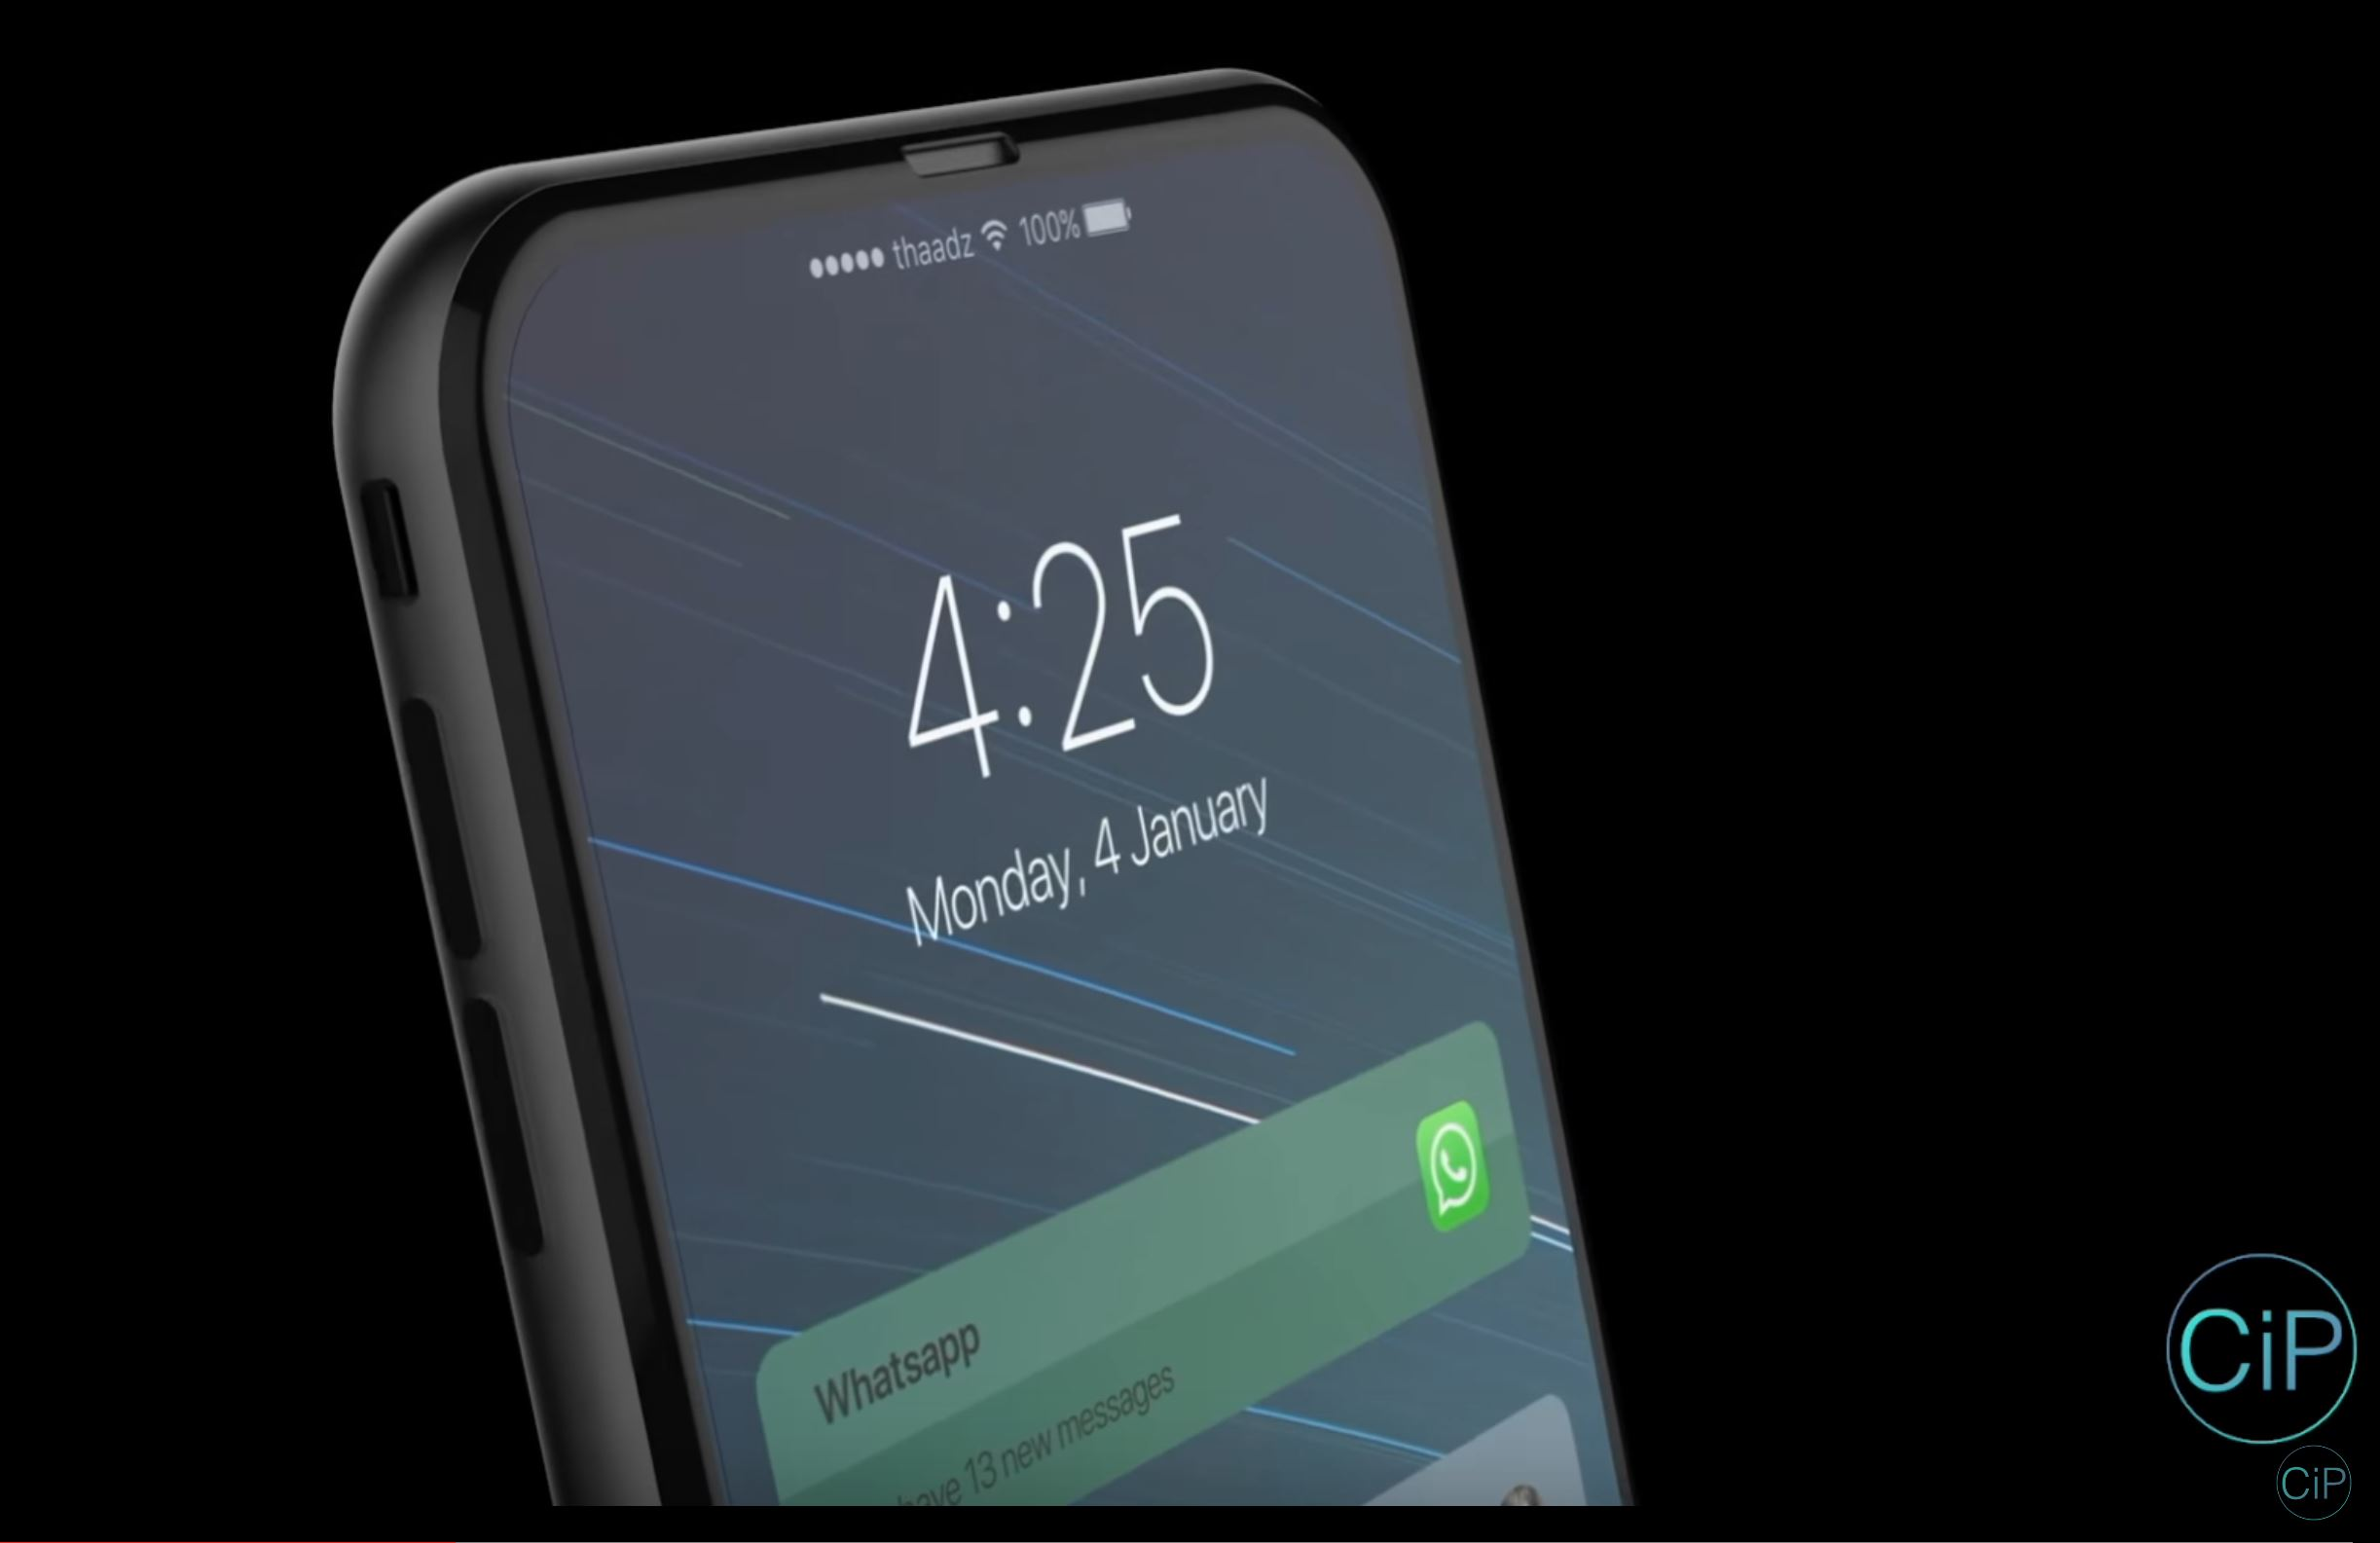 keynote 2019 iphone x